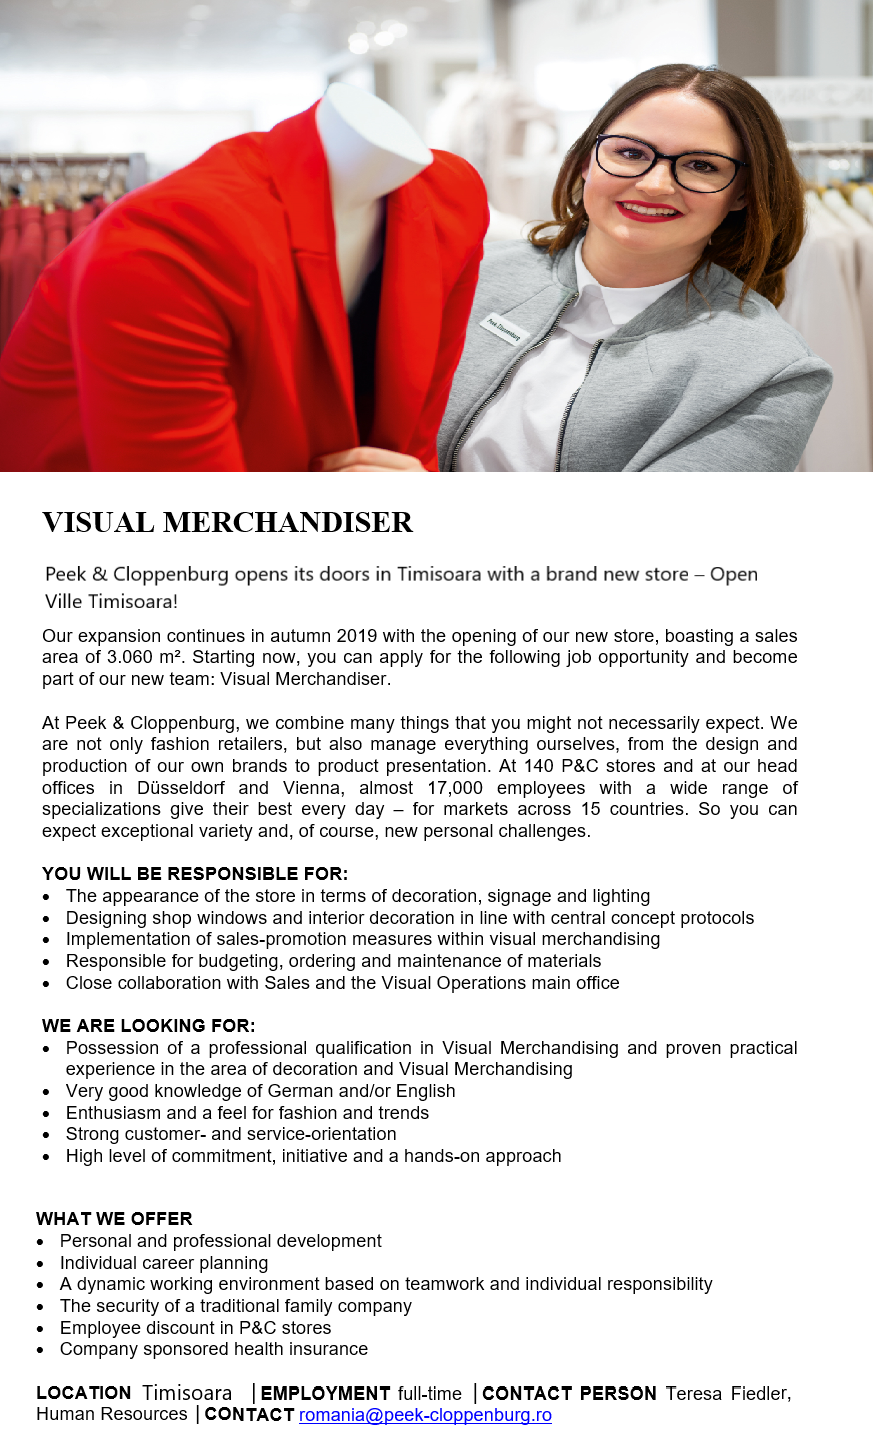 VISUAL MERCHANDISER  Peek & Cloppenburg opens its doors in Timisoara with a brand new store —    Our expansion continues in autumn 2019 with the opening of our new store, boasting a sales area of 3.060 m. Starting now, you can apply for the following job opportunity and become part of our new team: Visual Merchandiser.  At Peek & Cloppenburg, we combine many things that you might not necessarily expect. We are not only fashion retailers, but also manage everything ourselves, from the design and production of our own brands to product presentation. At 140 P&C stores and at our head offices in Dusseldorf and Vienna, almost 17,000 employees with a wide range of specializations give their best every day — for markets across 15 countries. So you can expect exceptional variety and, of course, new personal challenges.  YOU WILL BE RESPONSIBLE FOR:  The appearance of the store in terms of decoration, signage and lighting Designing shop windows and interior decoration in line with central concept protocols Implementation of sales-promotion measures within visual merchandising Responsible for budgeting, ordering and maintenance of materials Close collaboration with Sales and the Visual Operations main office  WE ARE LOOKING FOR:  Possession of a professional qualification in Visual Merchandising and proven practical experience in the area of decoration and Visual Merchandising Very good knowledge of German and/or English Enthusiasm and a feel for fashion and trends Strong customer- and service-orientation High level of commitment, initiative and a hands-on approach  WHAT WE OFFER  Personal and professional development Individual career planning Adynamic working environment based on teamwork and individual responsibility The security of a traditional family company Employee discount in P&C stores Company sponsored health insurance  LOCATION Timisoara   EMPLOYMENT full-time   CONTACT PERSON Teresa Fiedler,Human Resources   CONTACT romania@peek-cloppenburg.ro